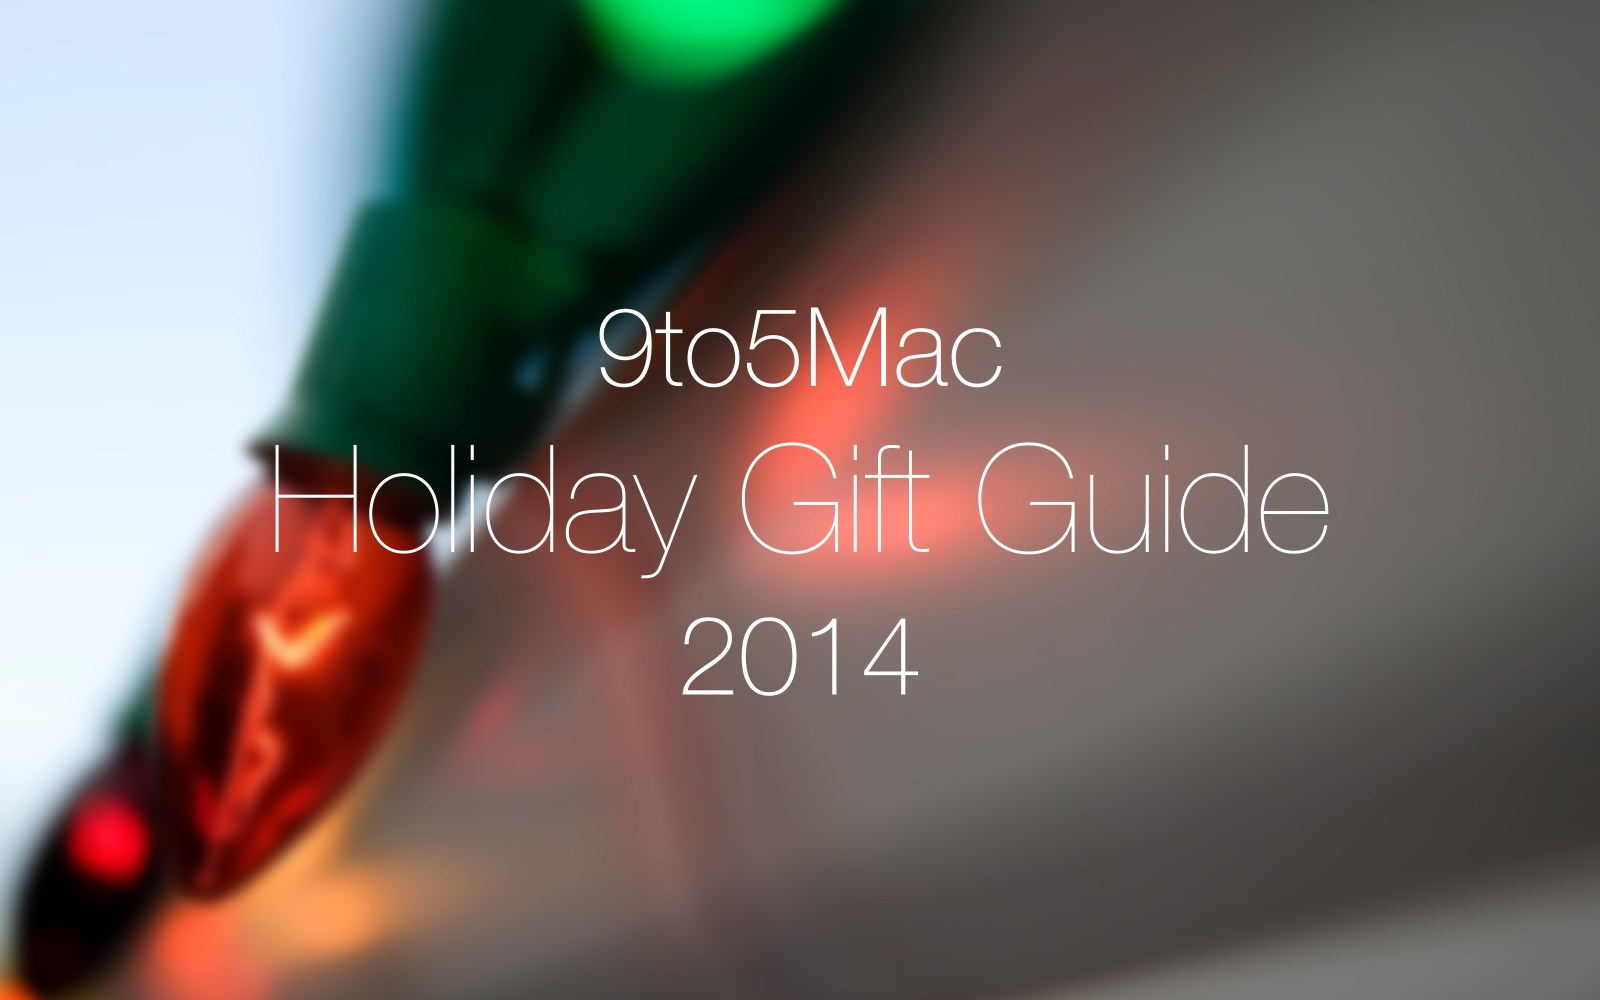 Jeremy's holiday gift guide: Mac, iPhone & iPad gear you can trust